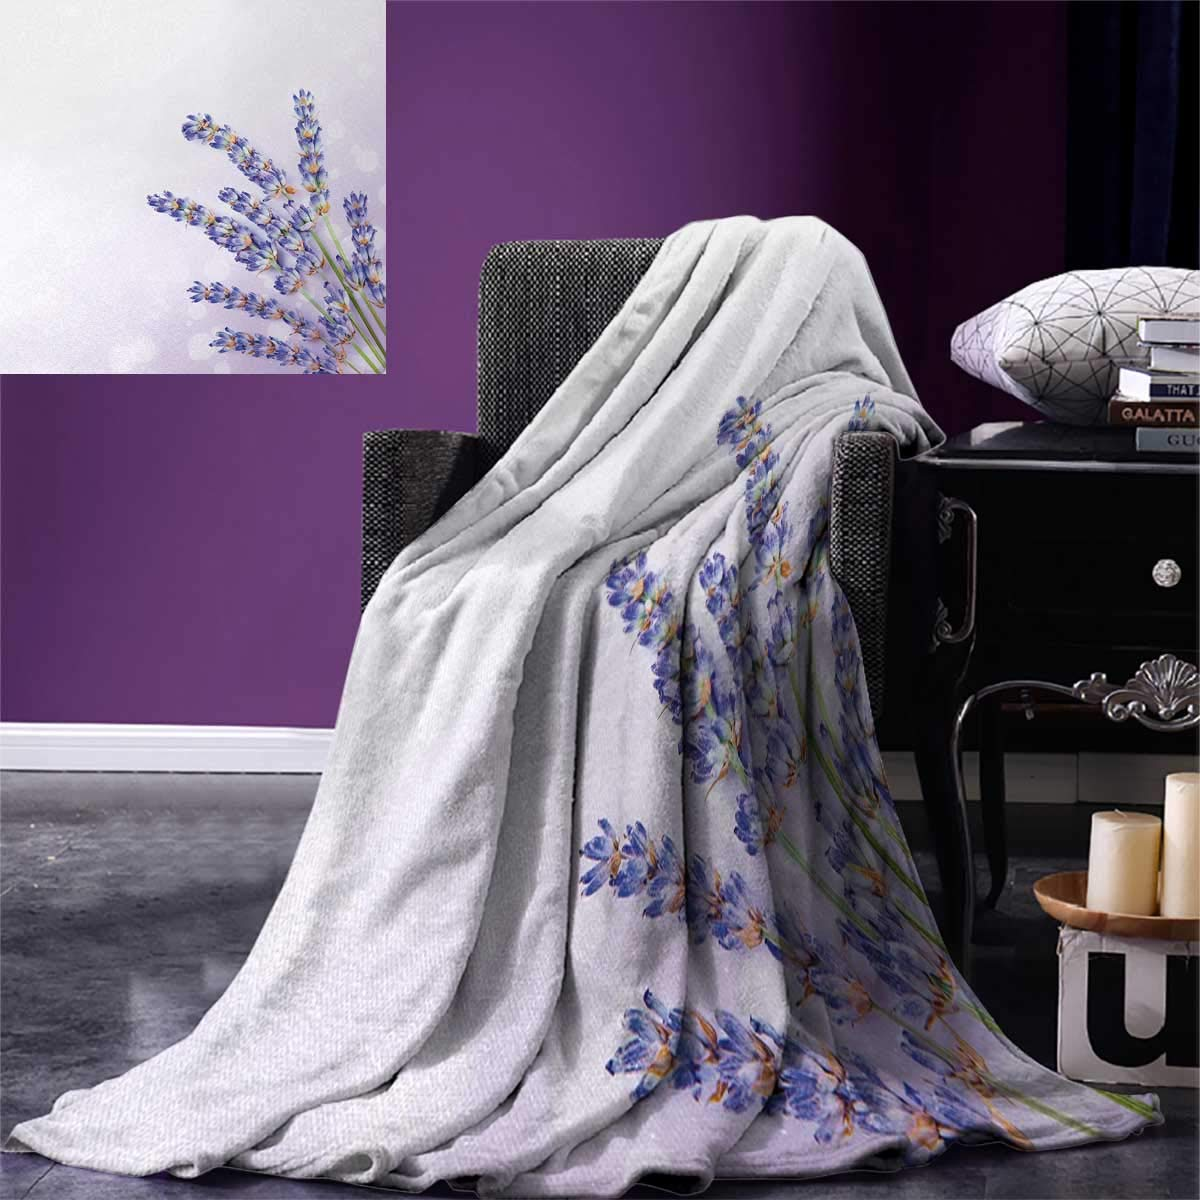 smallbeefly Lavender Digital Printing Blanket Little Posy Medicinal Herb Fresh Plant Purple Flower Spa Aromatheraphy Organic Summer Quilt Comforter 80''x60'' Lavander